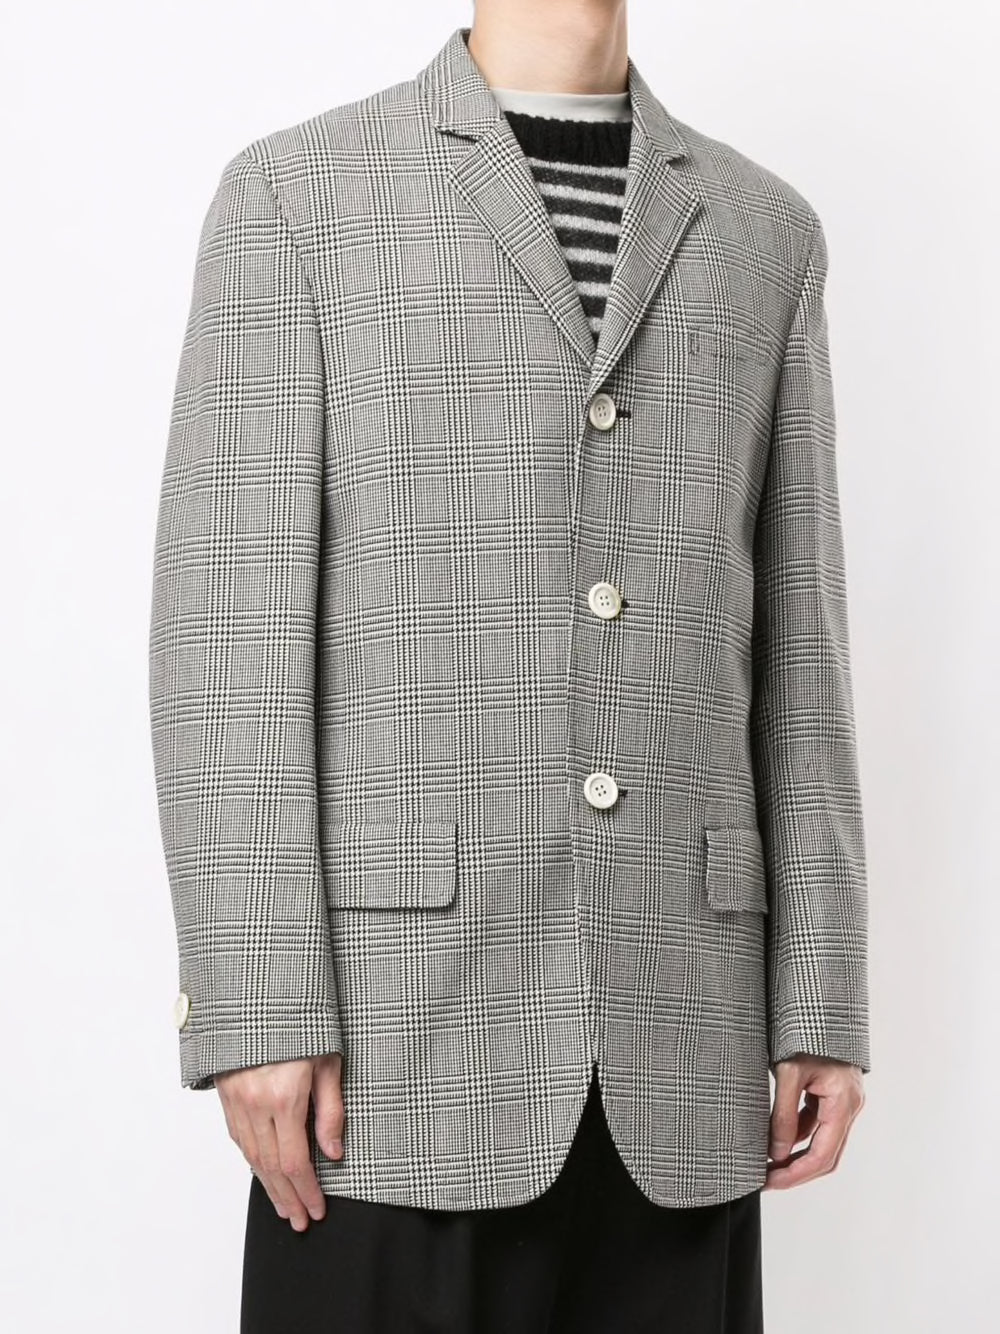 UNDERCOVER MEN HUNDTOOTH CHECK PRINCE OF WALES CHECK JACKET